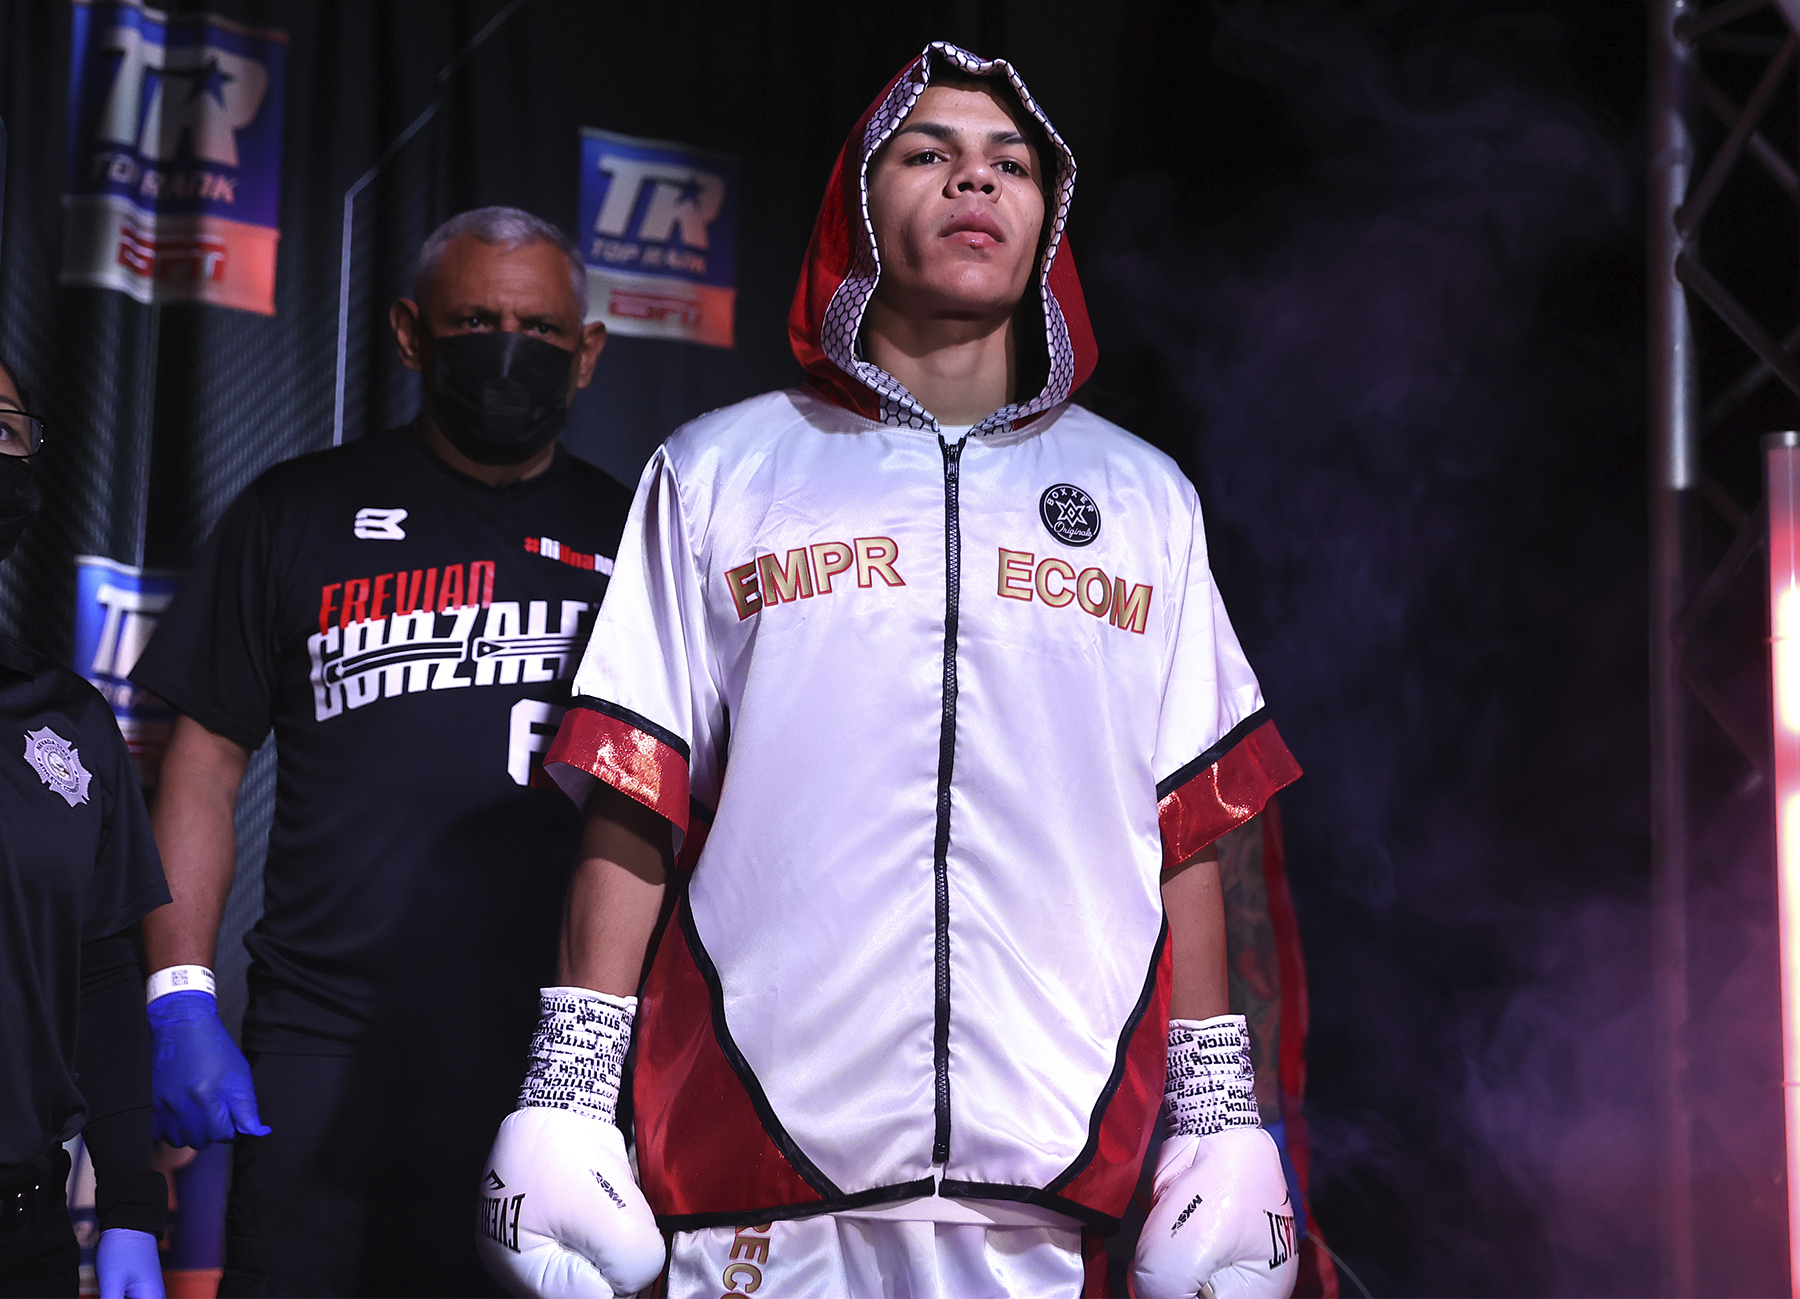 Frevian  - Jose Zepeda vs Ivan Baranchyk Undercard Results: Frevian Gonzalez Robles Keeps The Wins Coming, This Time At The Expense Of Carlos Marrero